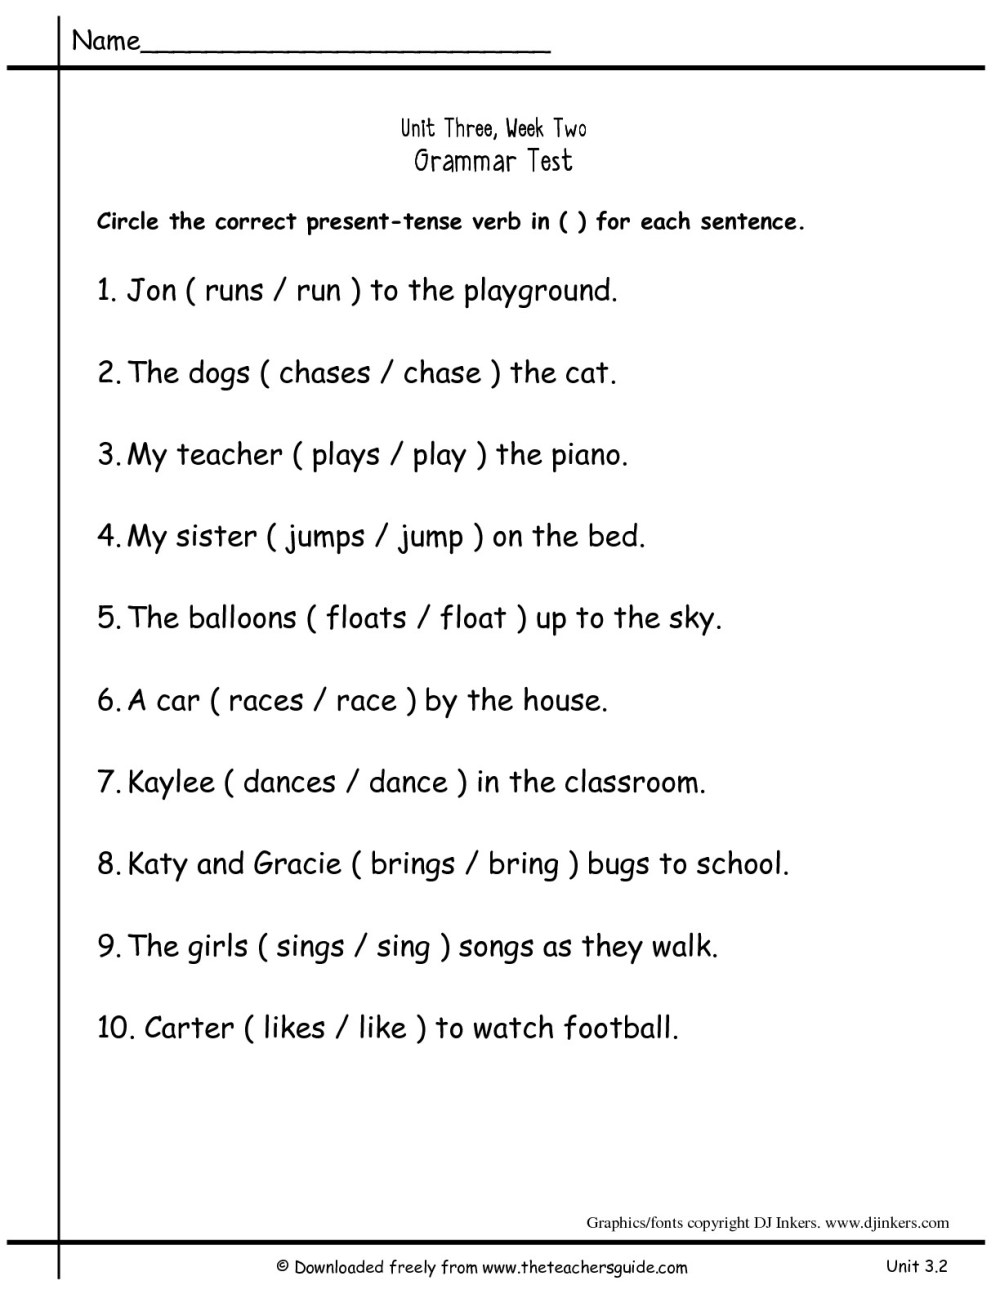 medium resolution of Simple Present Tense Worksheets For Grade 4   Printable Worksheets and  Activities for Teachers